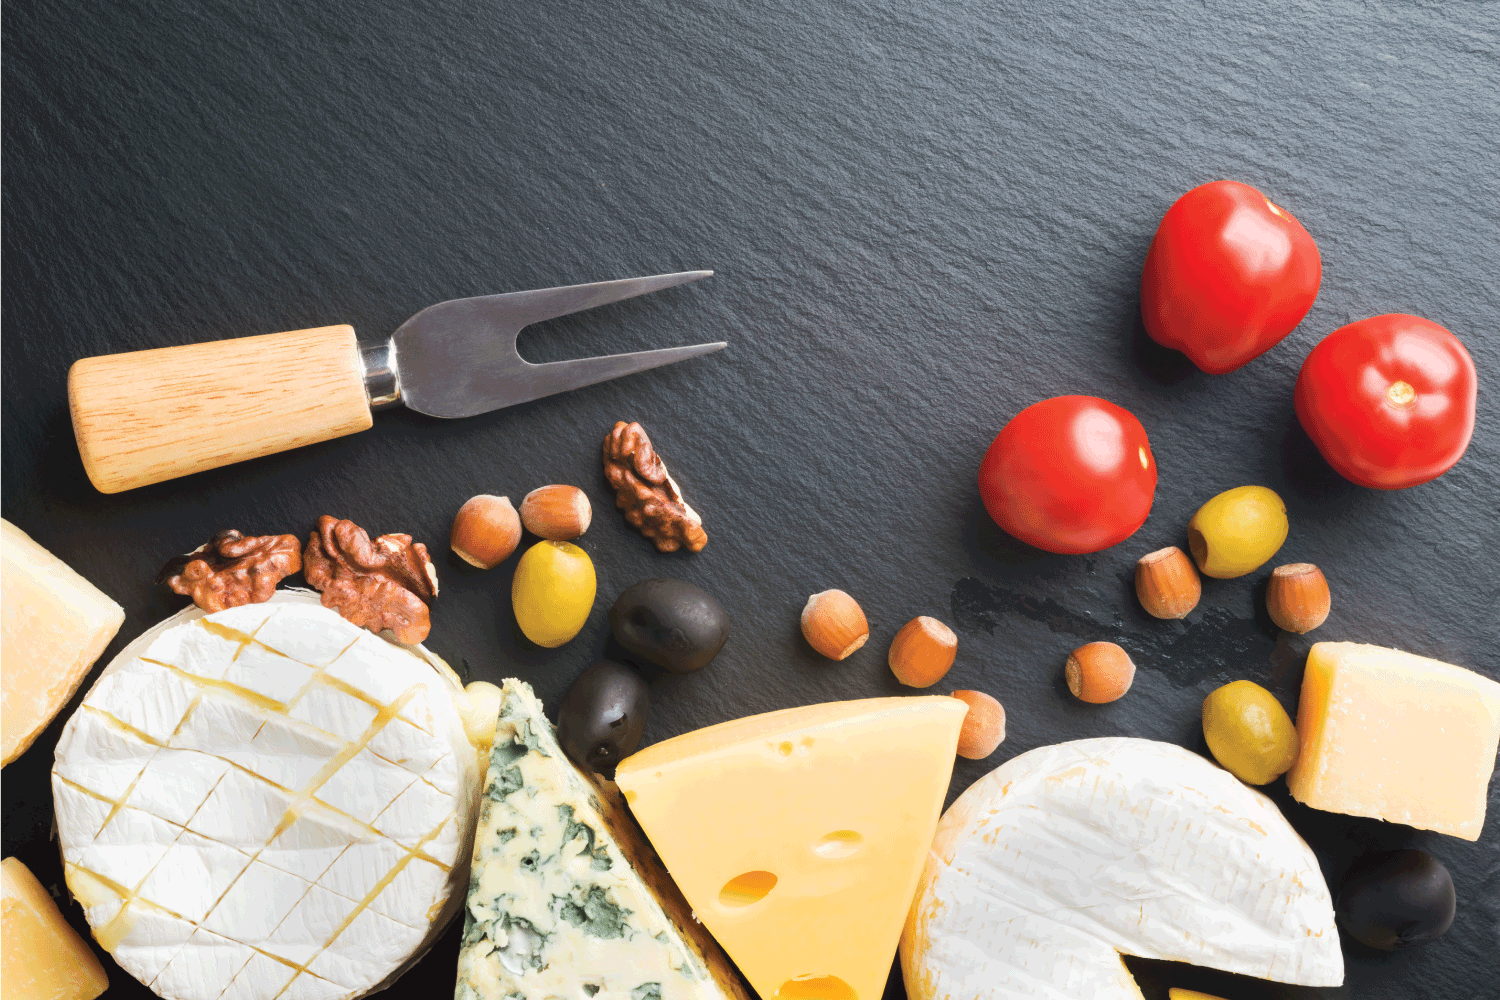 Different varieties of cheese, tomatoes and nuts with cheese fork